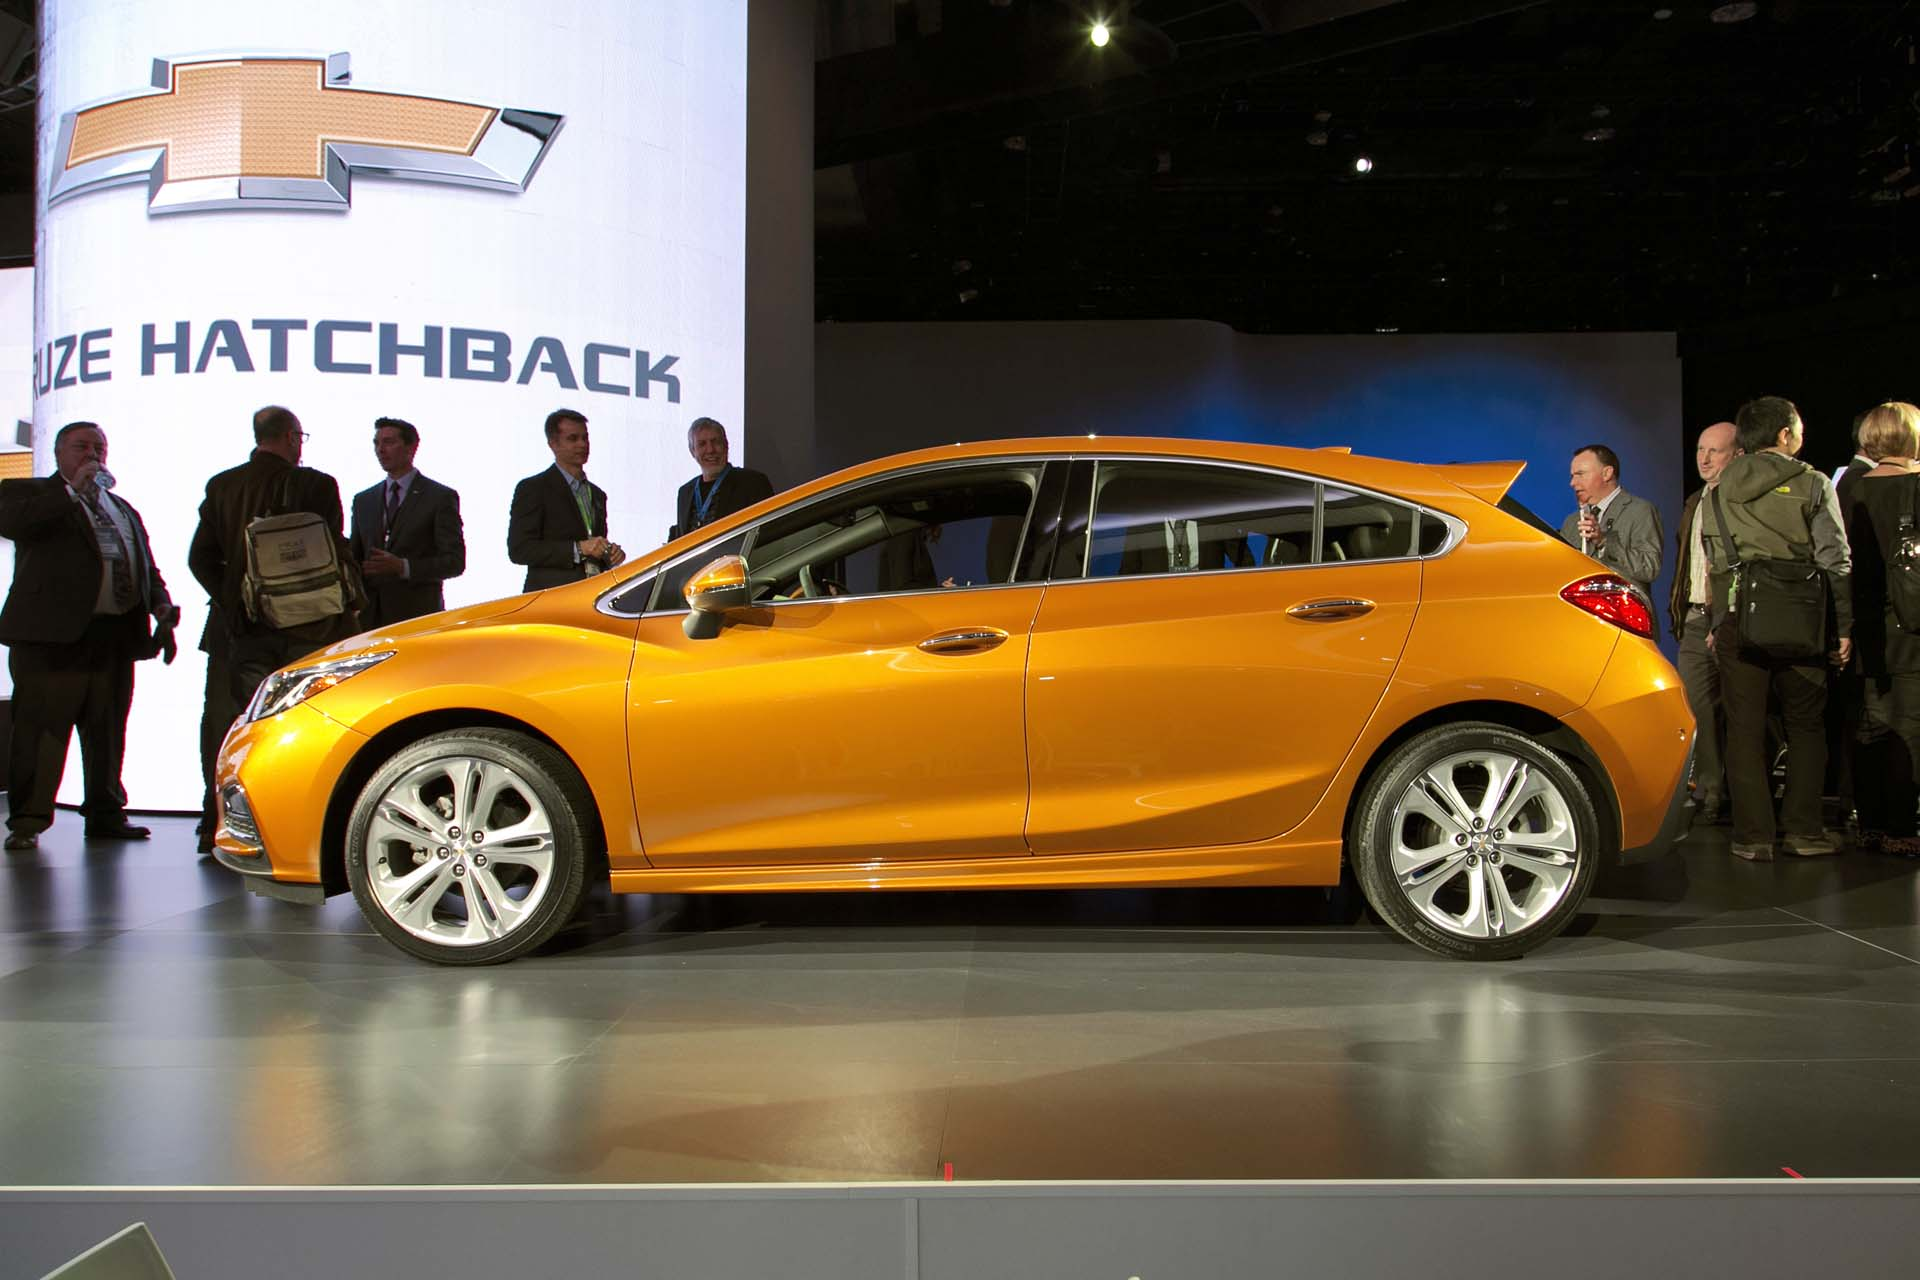 Chevrolet revealed a hatchback variant of its best-selling Cruze, featuring a slew of high-tech gadgetry as well as superior driving dynamics and more rear legroom than its competitors. In addition to a comprehensive suite of driver's aids, the Teen Driver feature promises to support safe techniques for new drivers and can provide parents with data on their child's  driving habits.